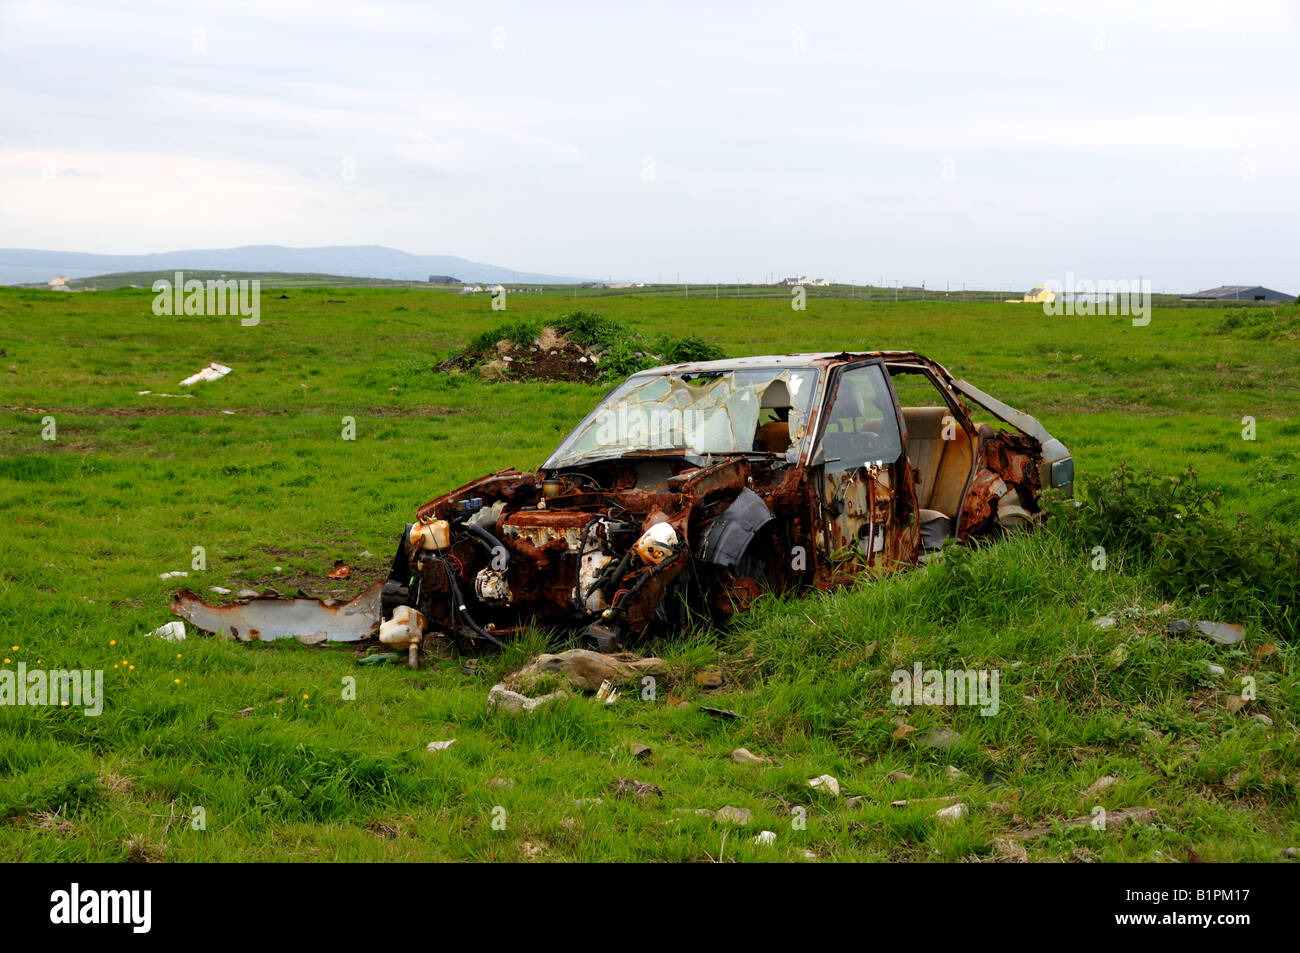 An abandoned car rusts in the open green field. County Clare, Ireland. - Stock Image